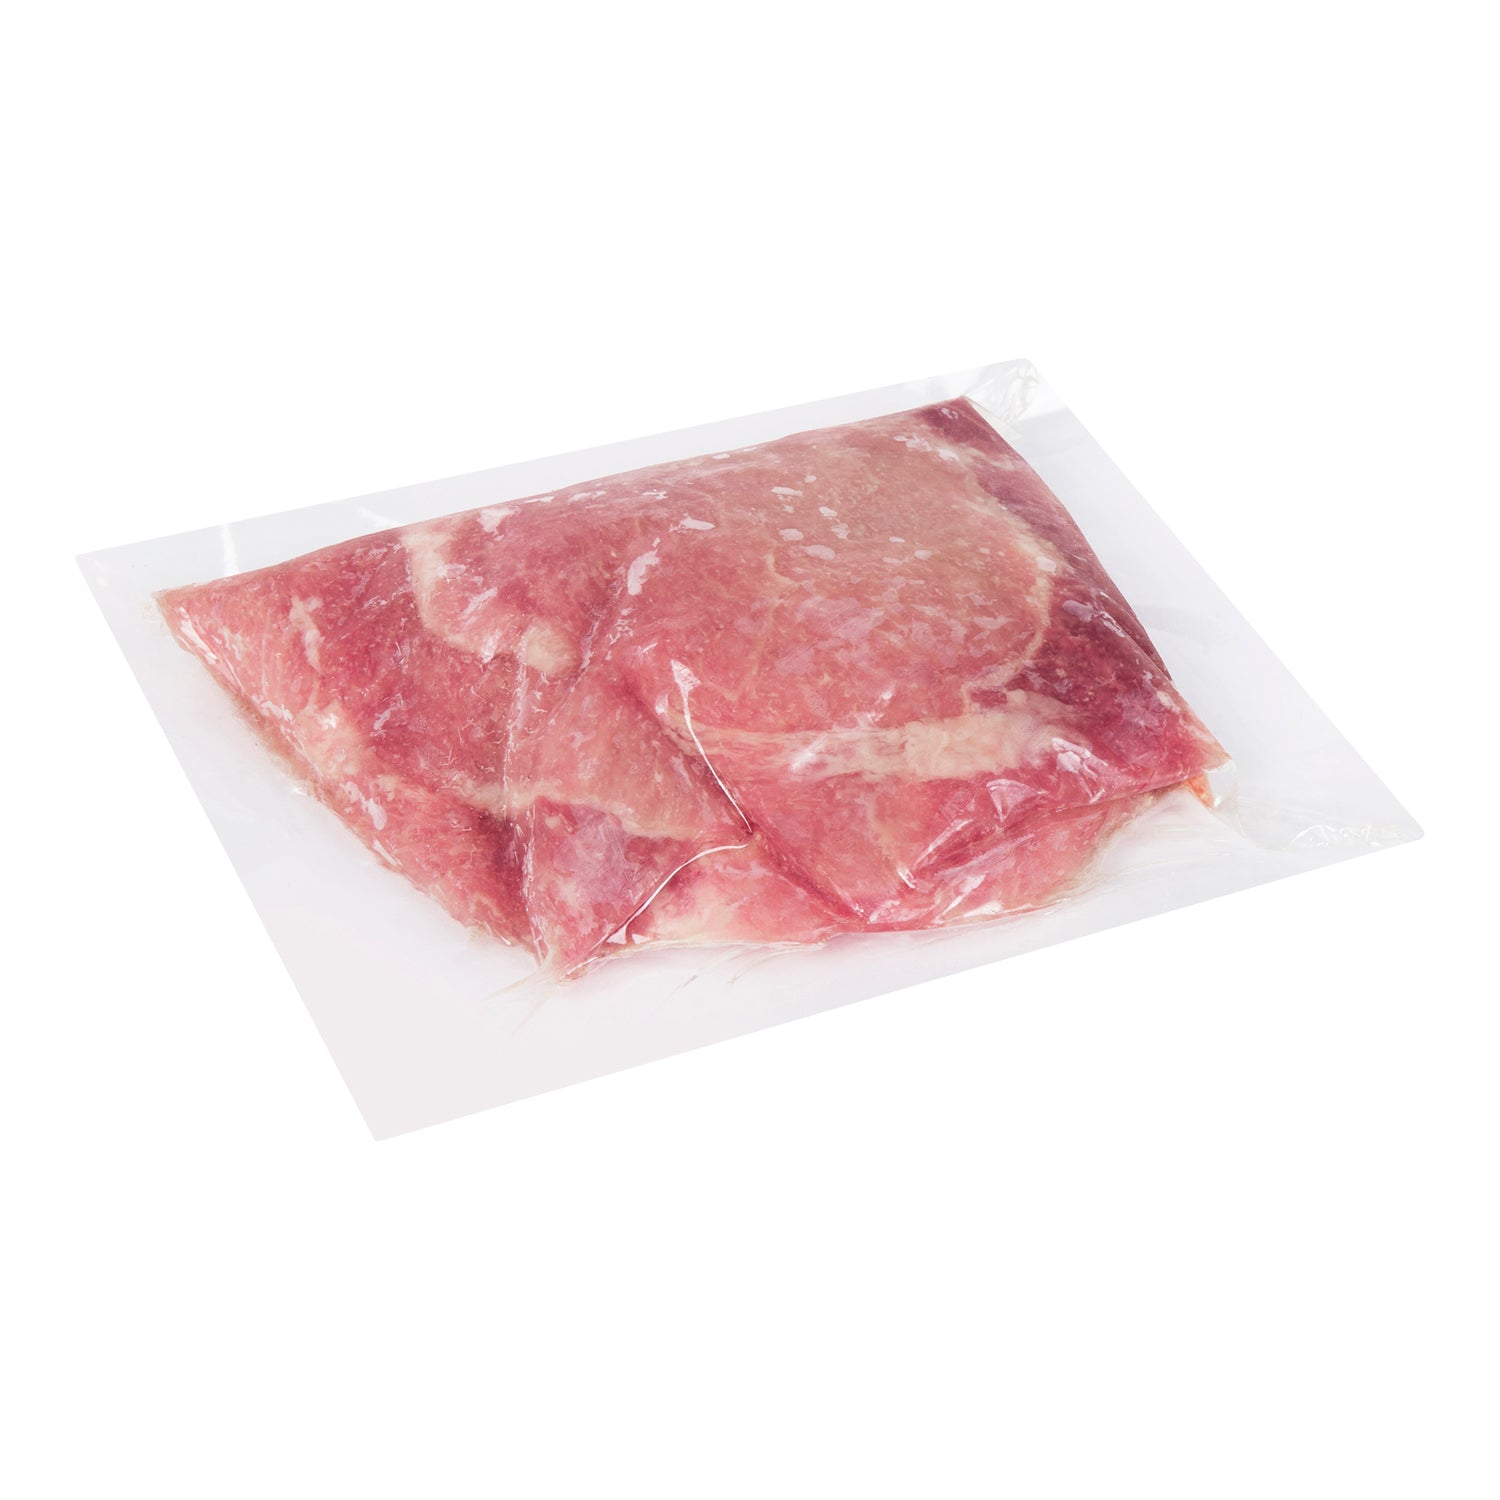 Sysco Fine Meats Frozen Pork Cutlet 113 g - 40 Pack [$2.37/each]